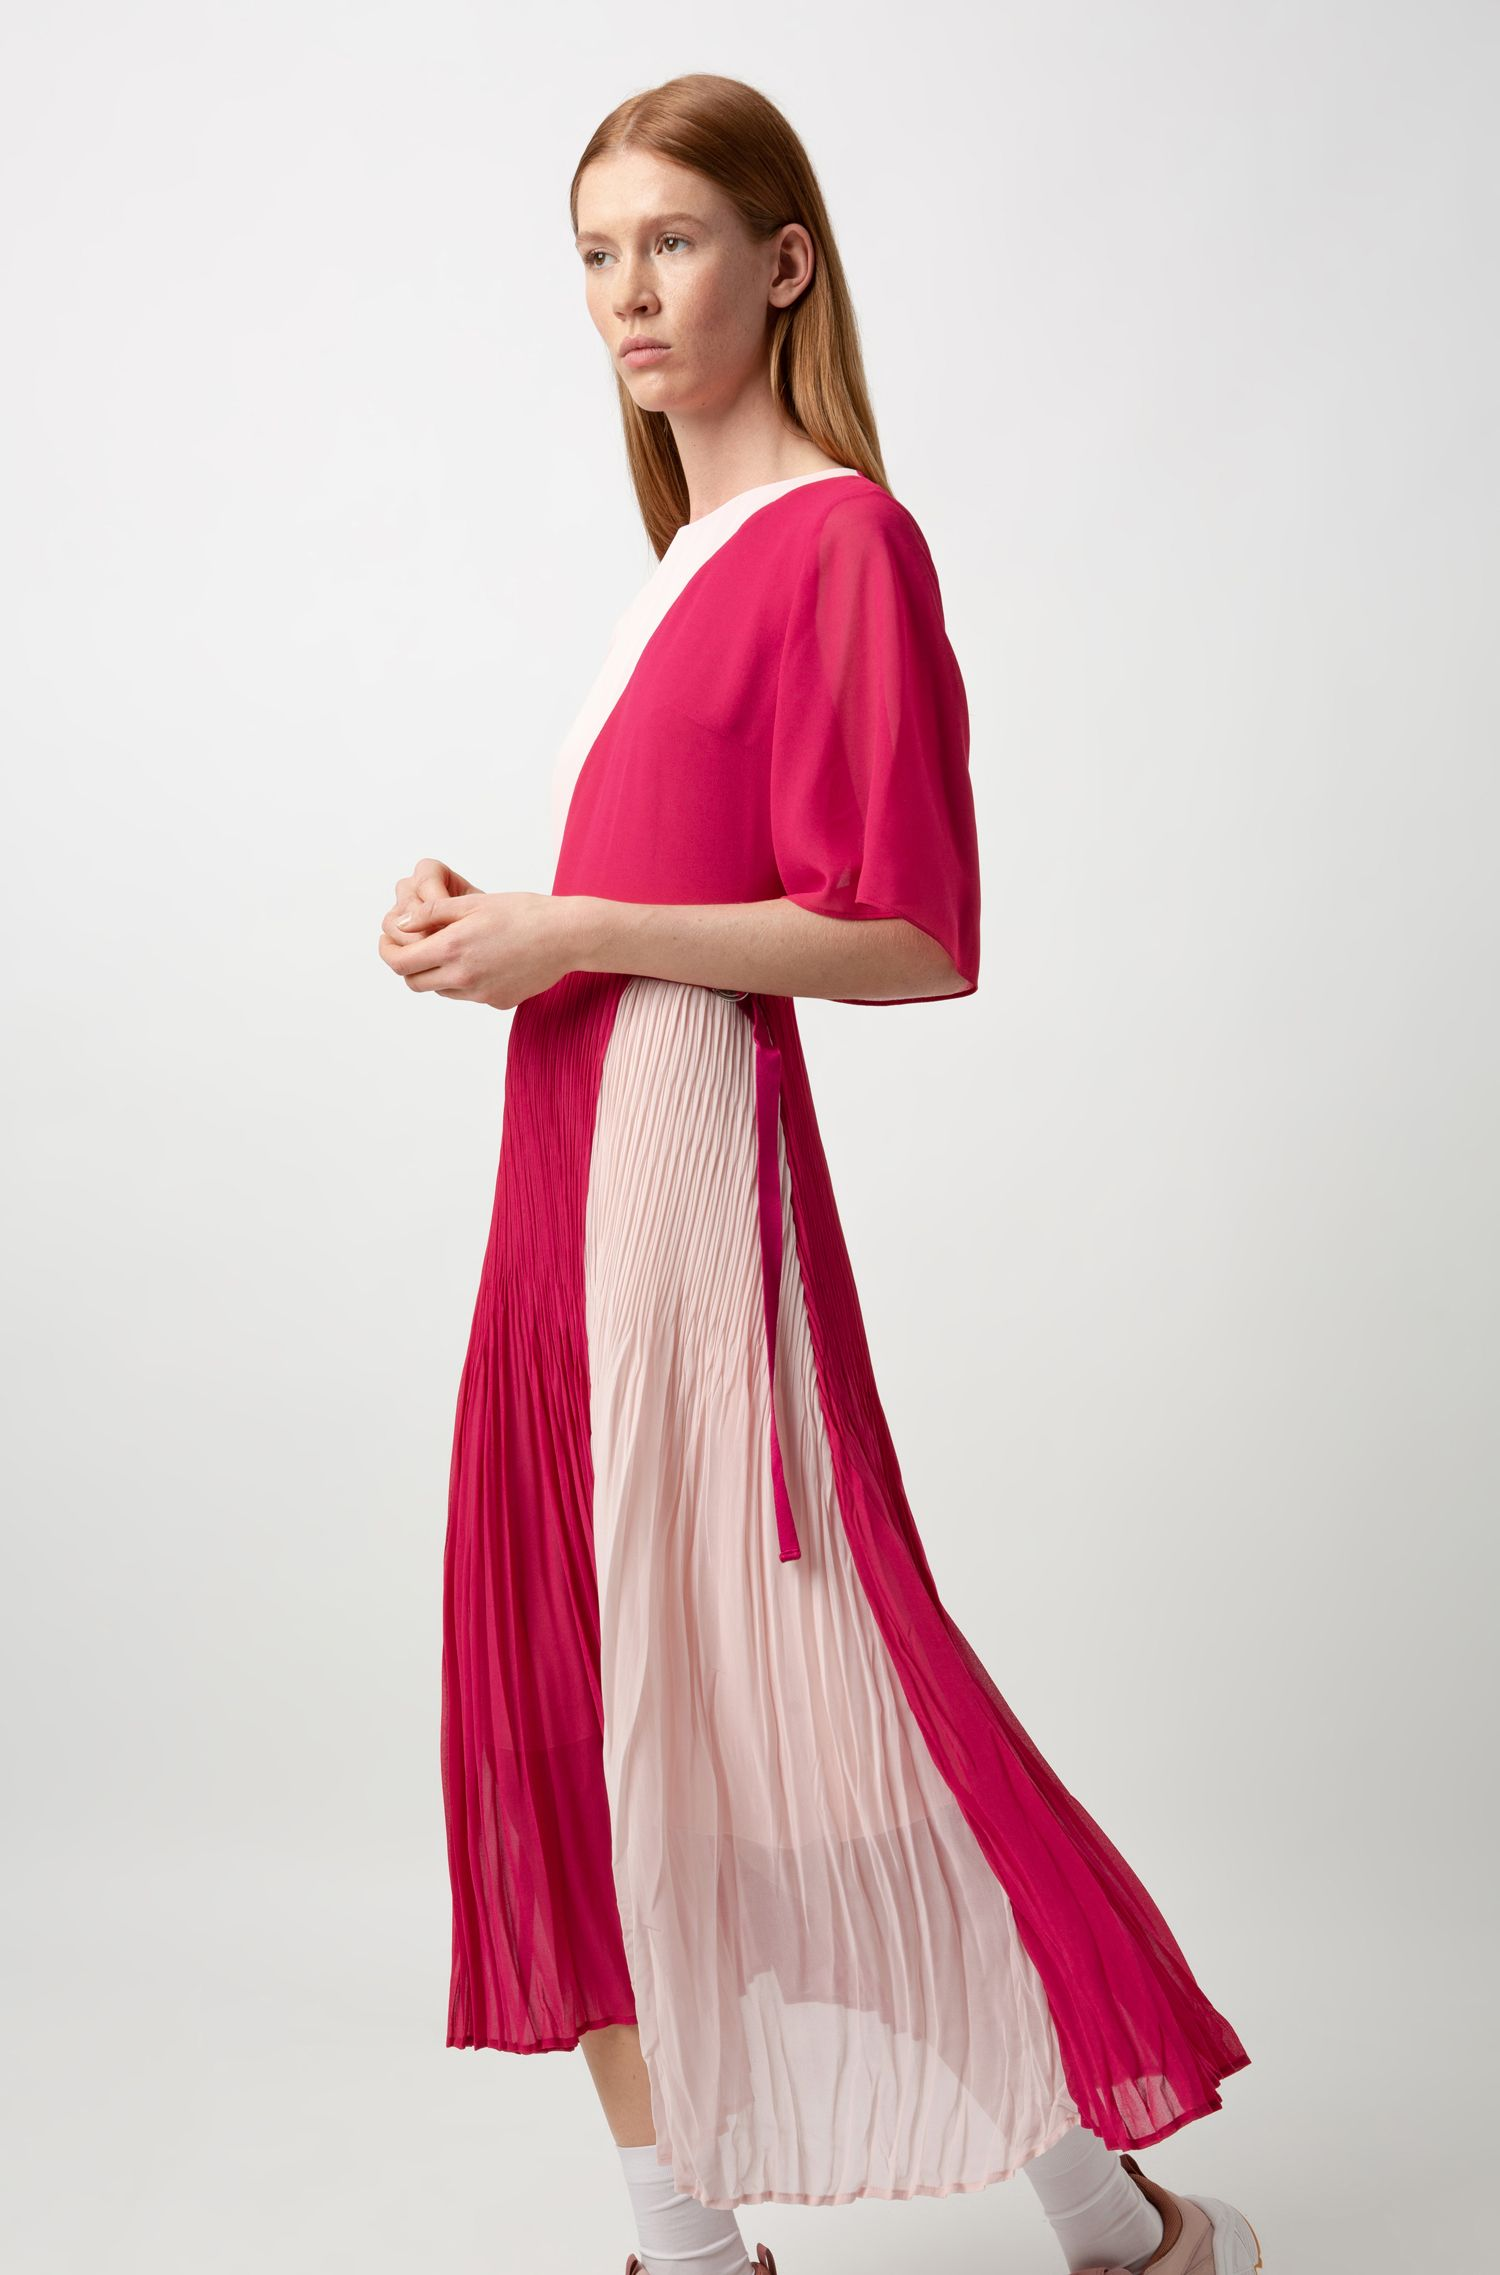 Kleid in Colour-Block-Optik mit Plissee-Rock und transparenten Ärmeln, Pink